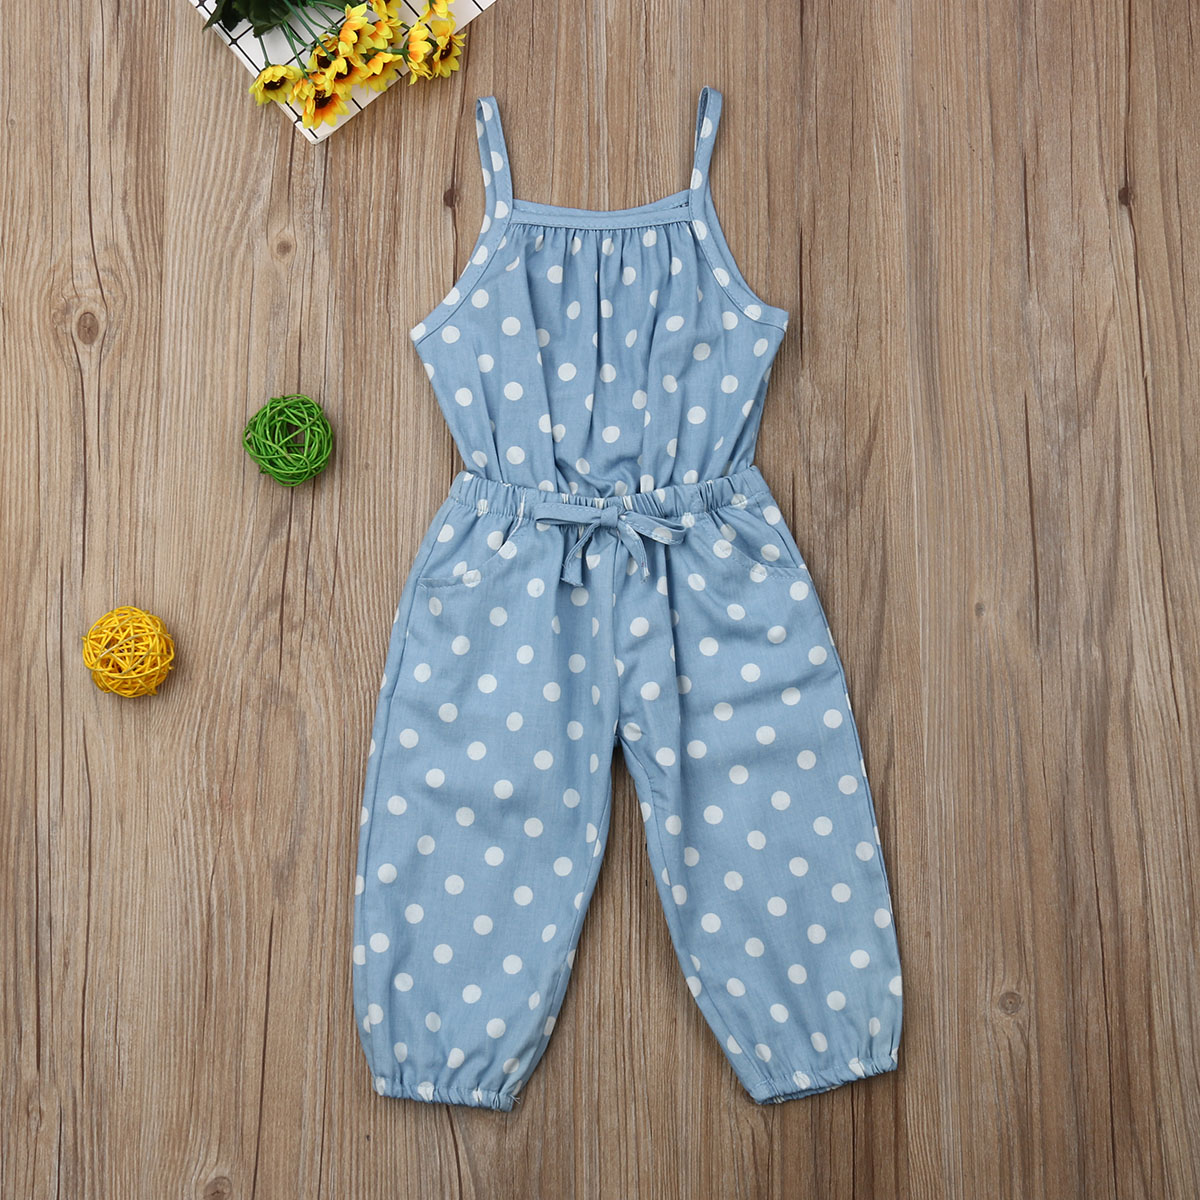 Pudcoco Summer Toddler Baby Girl Clothes Polka Dot Print Sling Romper Jumpsuit One-Piece Outfit Sunsuit Playsuit Clothes Summer